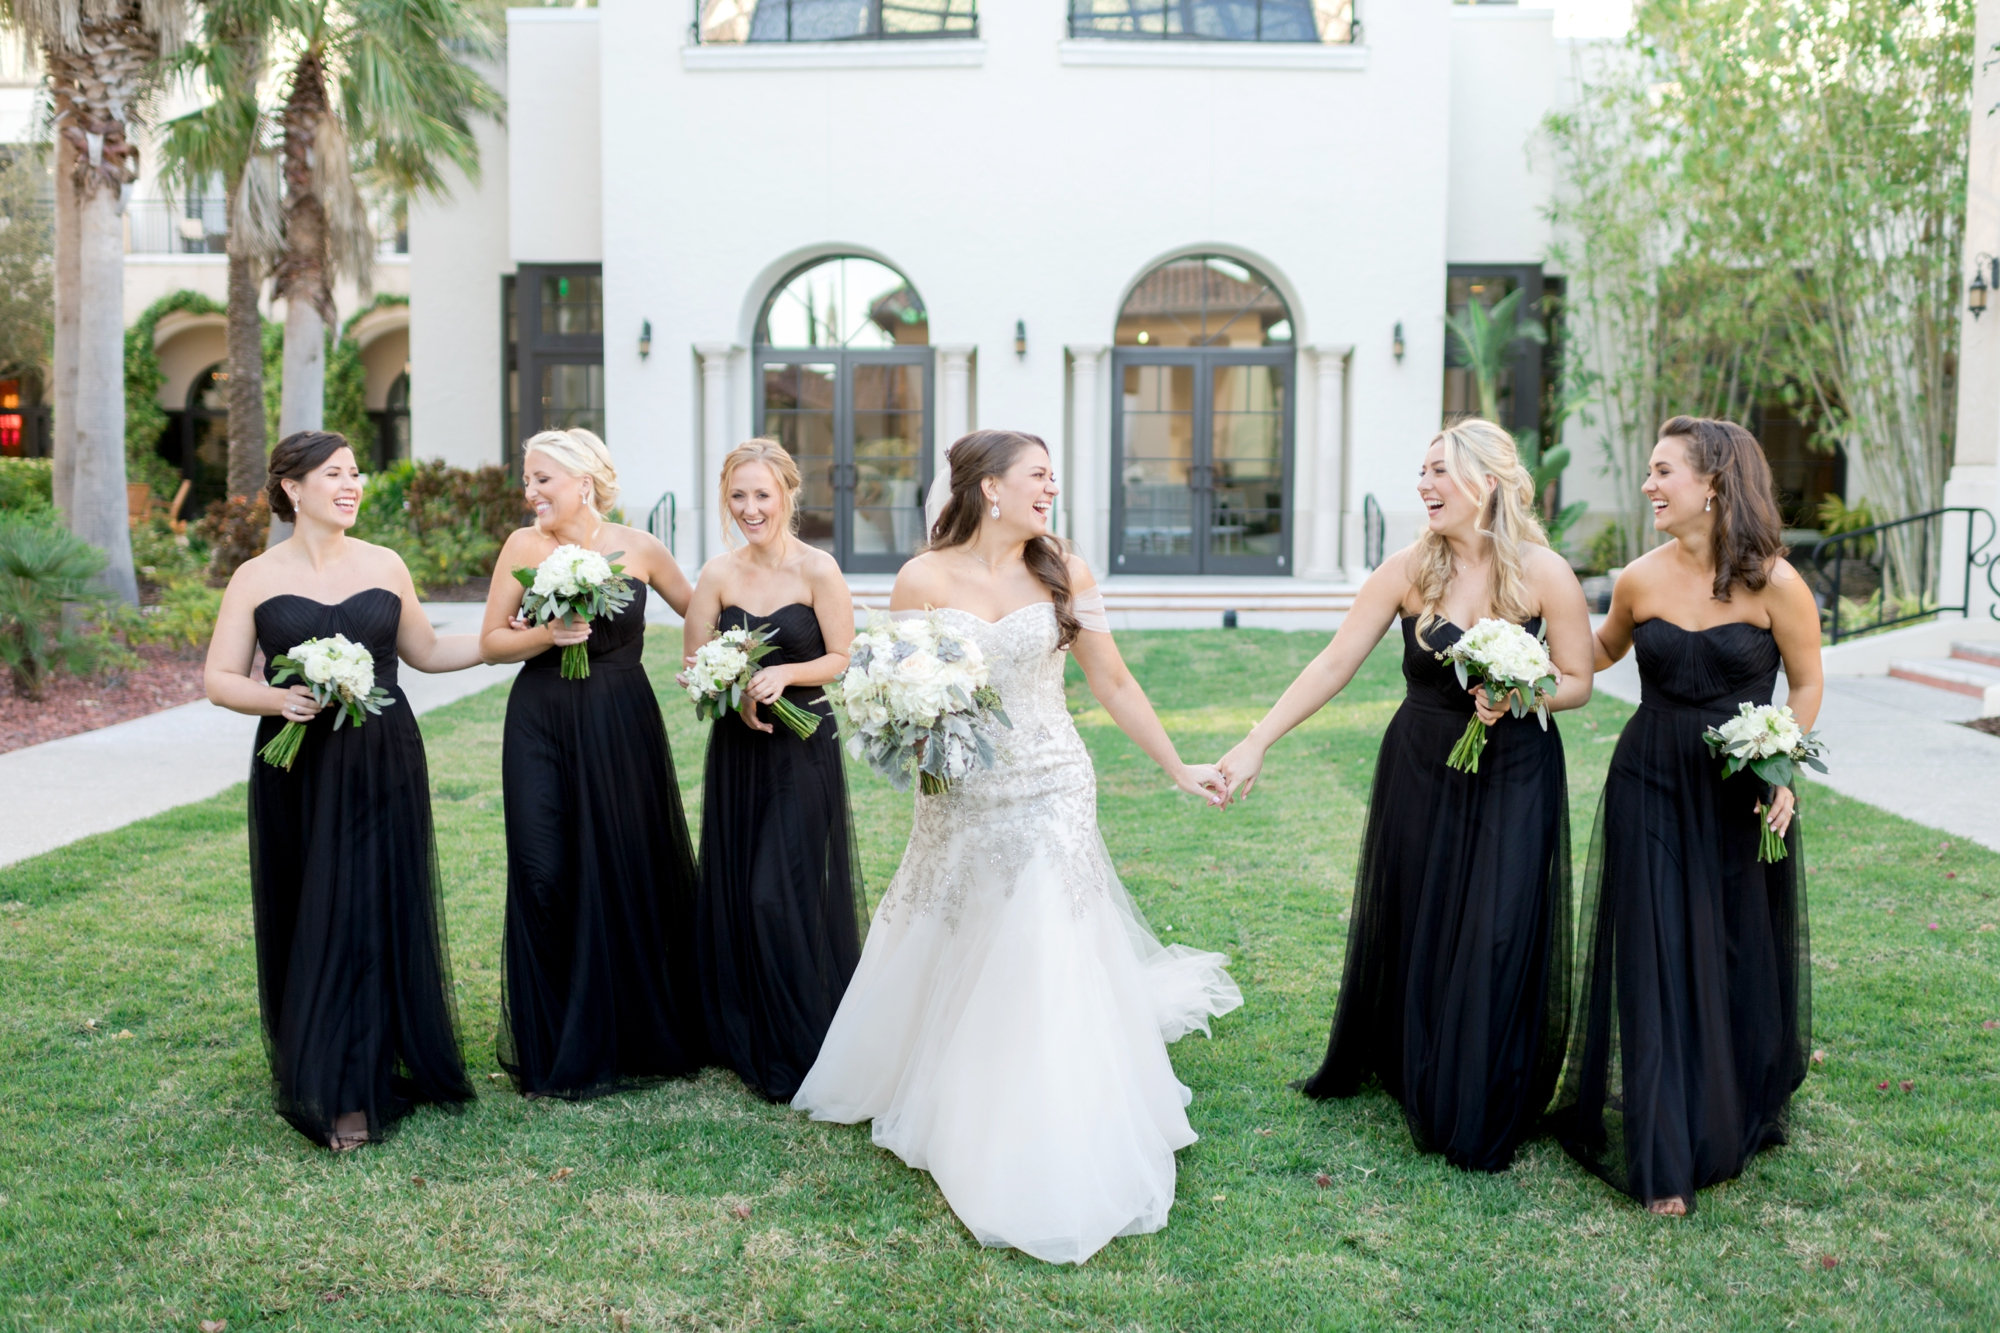 photos to take with your bridesmaids